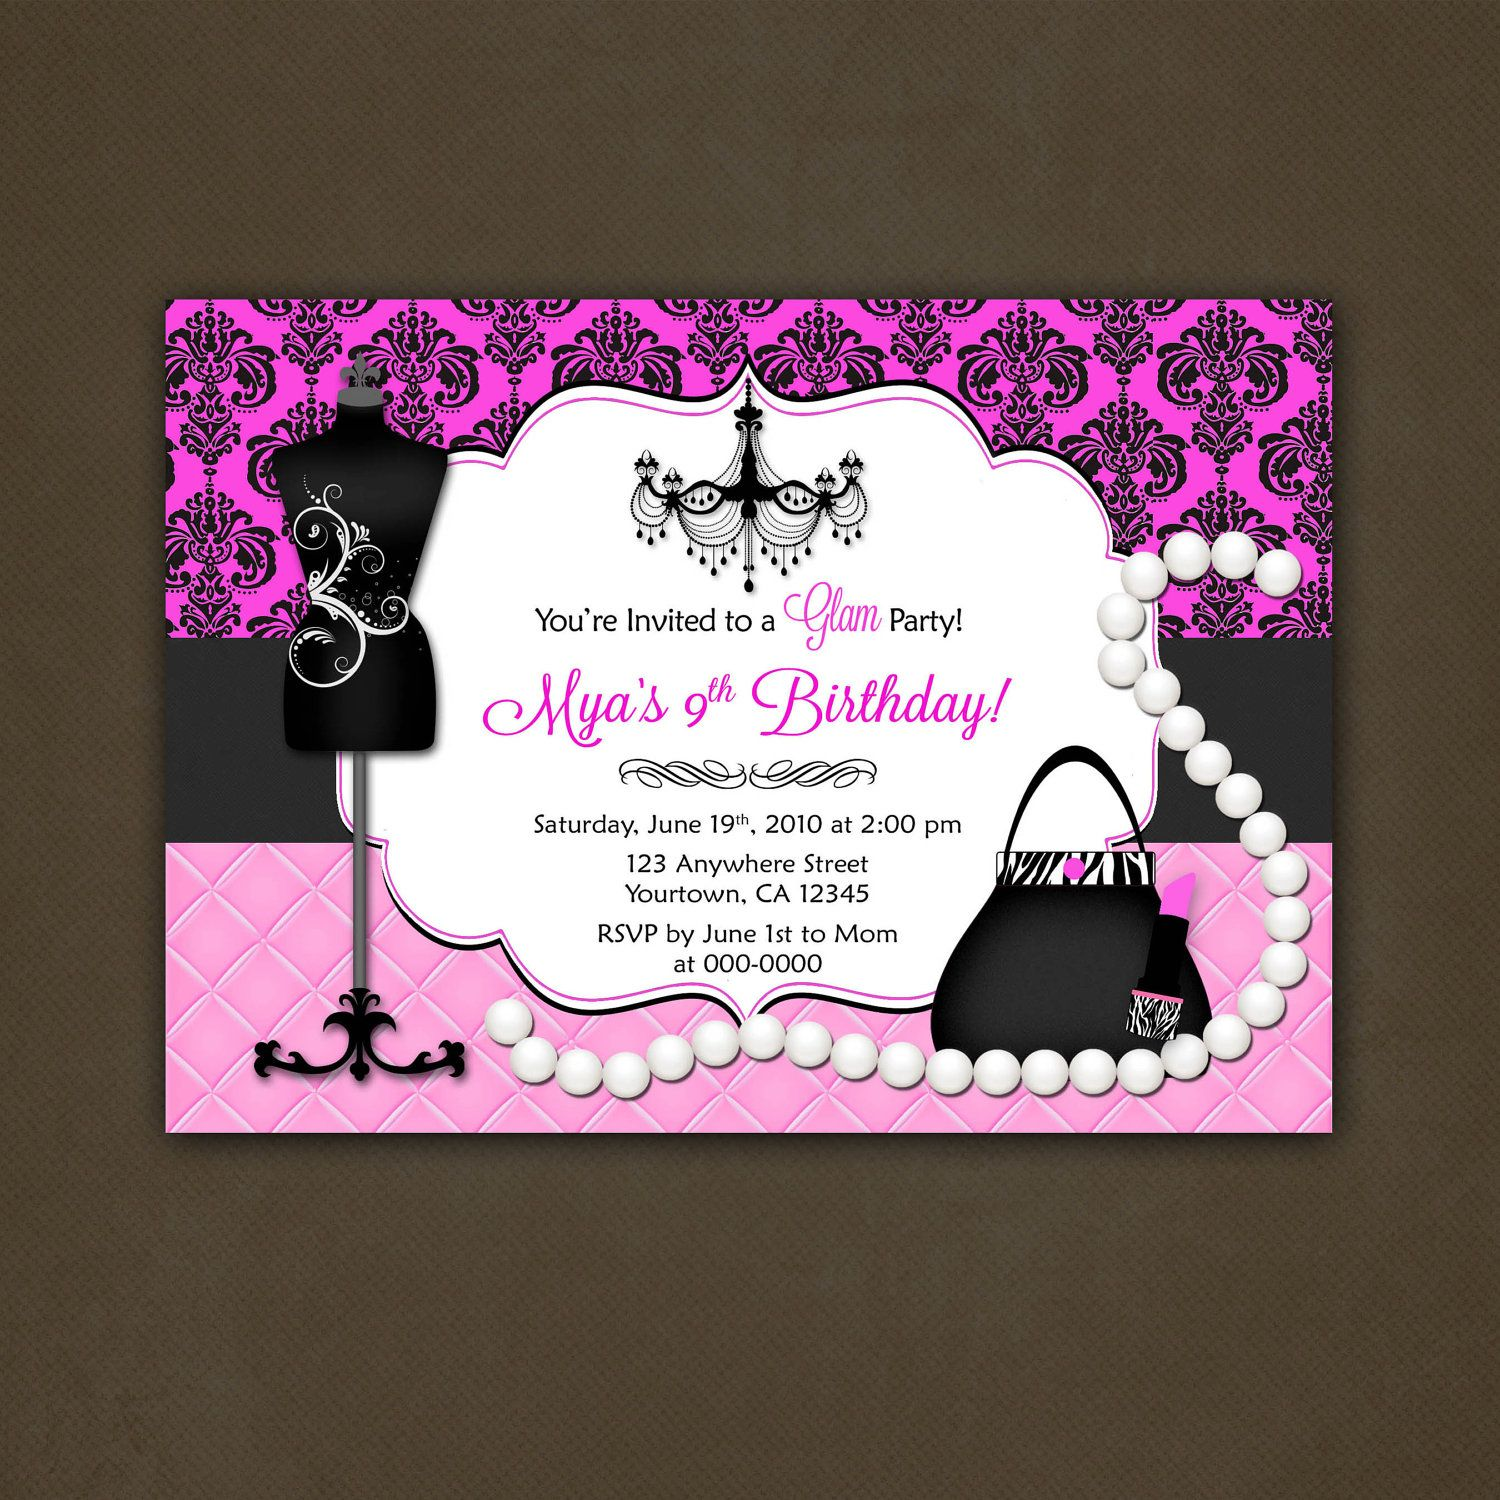 Fashionista invites glamour fashionista birthday party fashionista invites glamour fashionista birthday party invitation by pinkskyprintables stopboris Choice Image